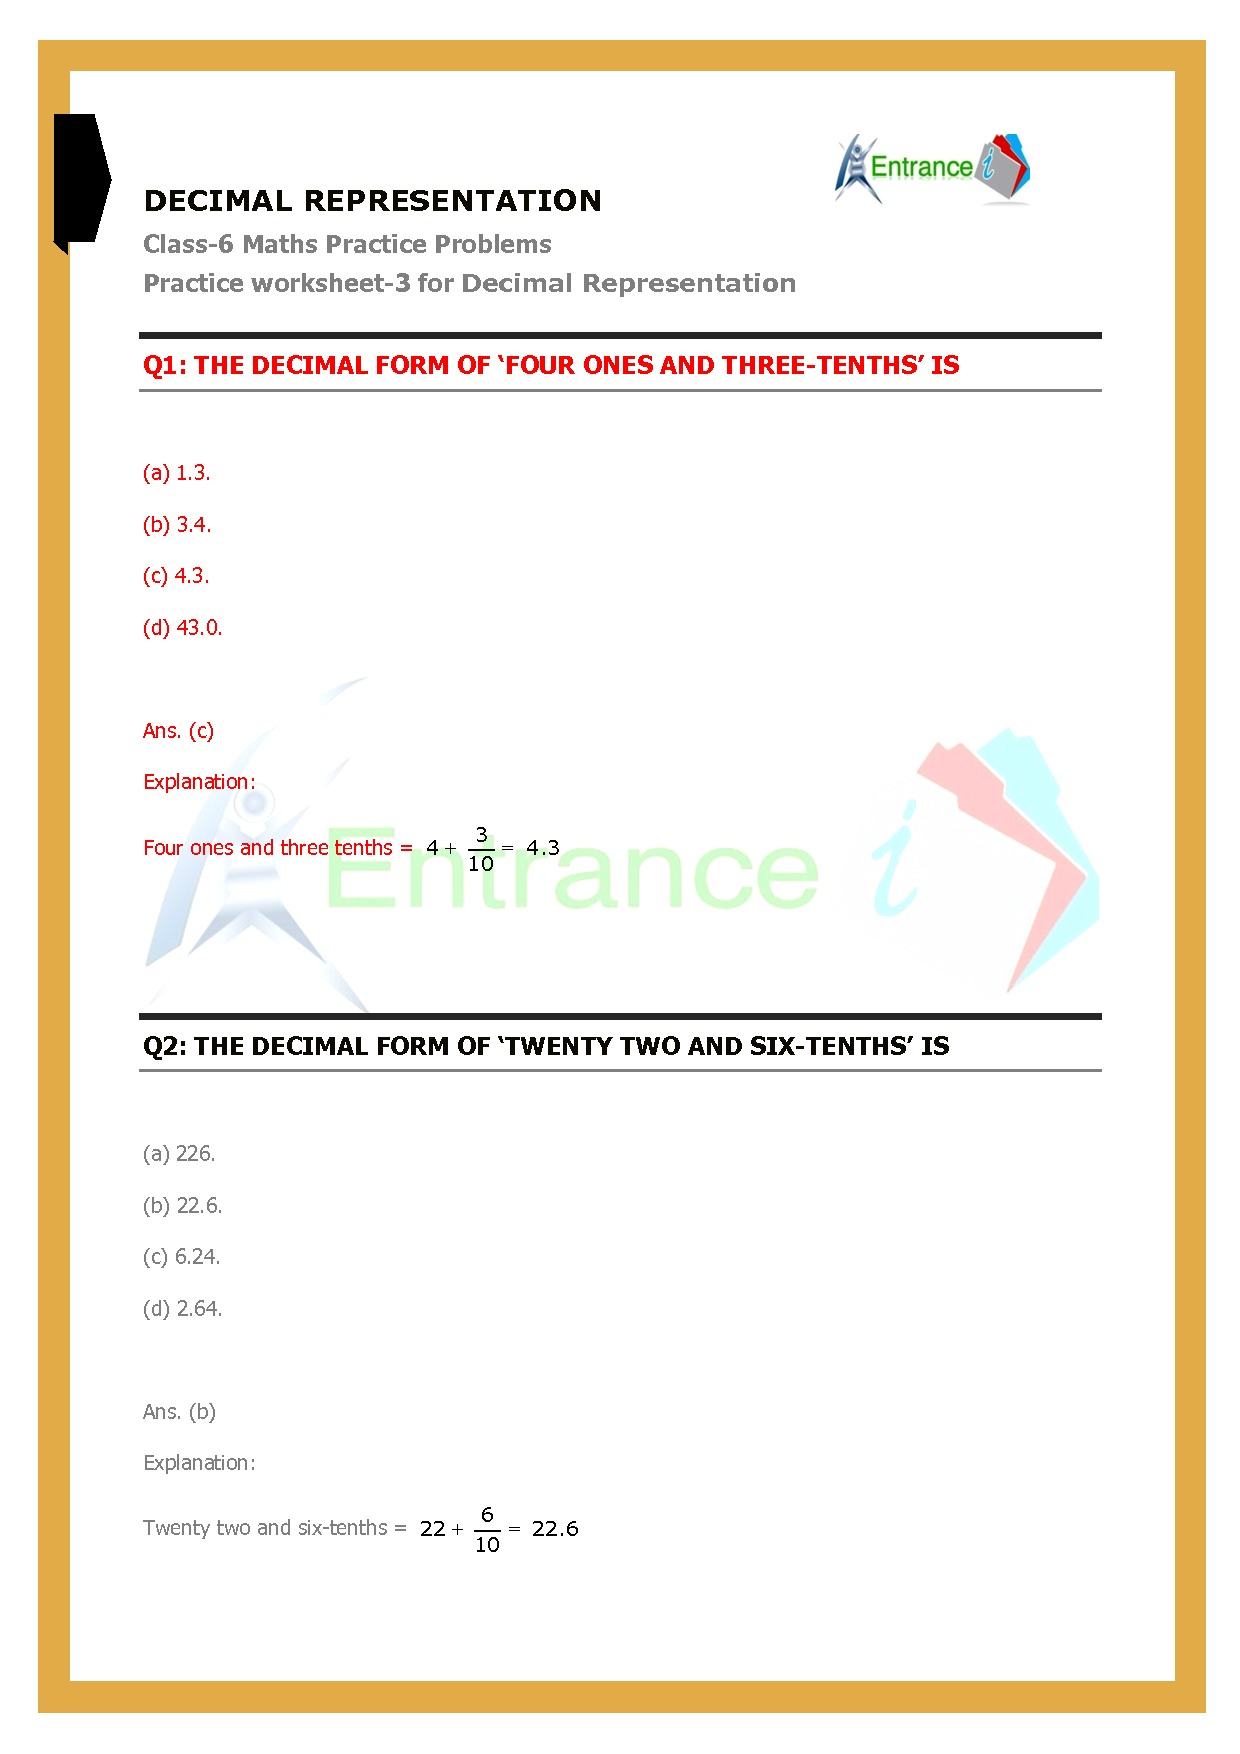 Worksheet 3 For Chapter 8 Decimals Class 6 Maths Entrancei